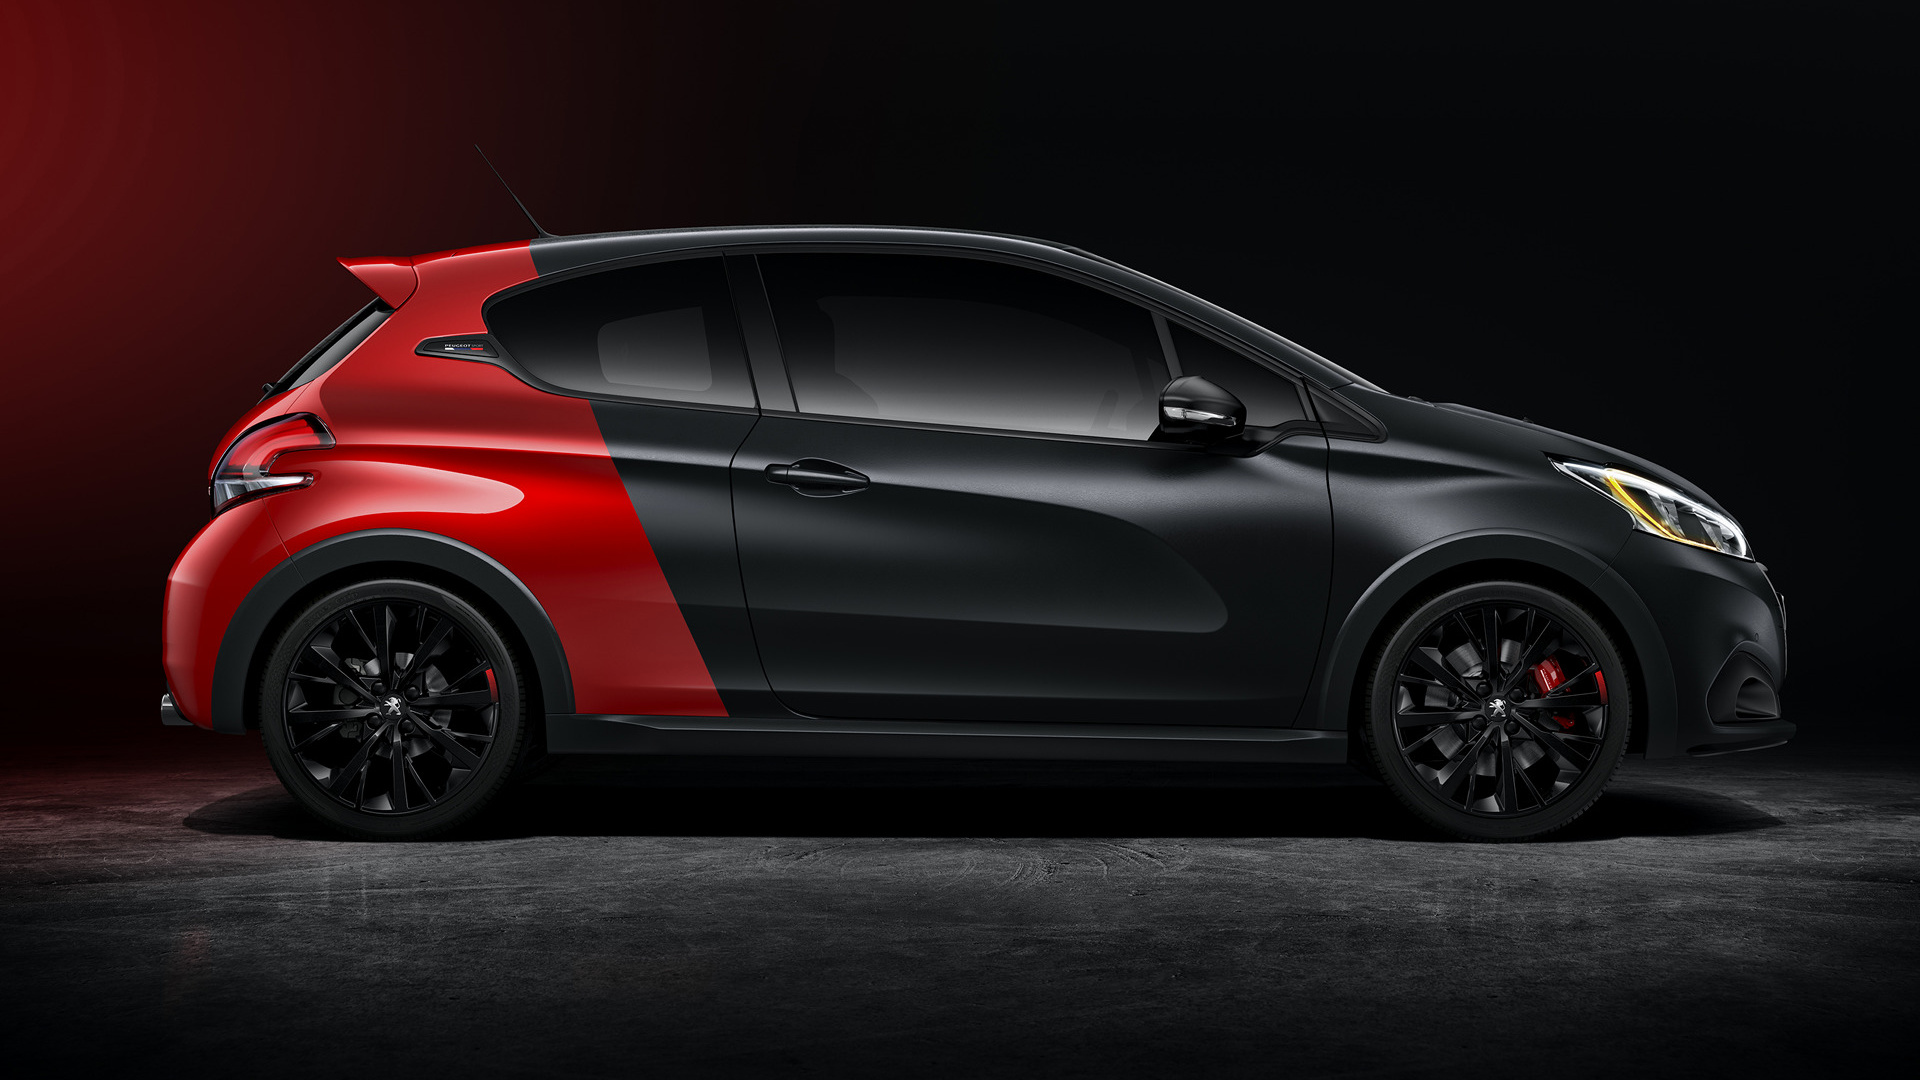 peugeot 208 gti by peugeot sport 2015 wallpapers and hd. Black Bedroom Furniture Sets. Home Design Ideas